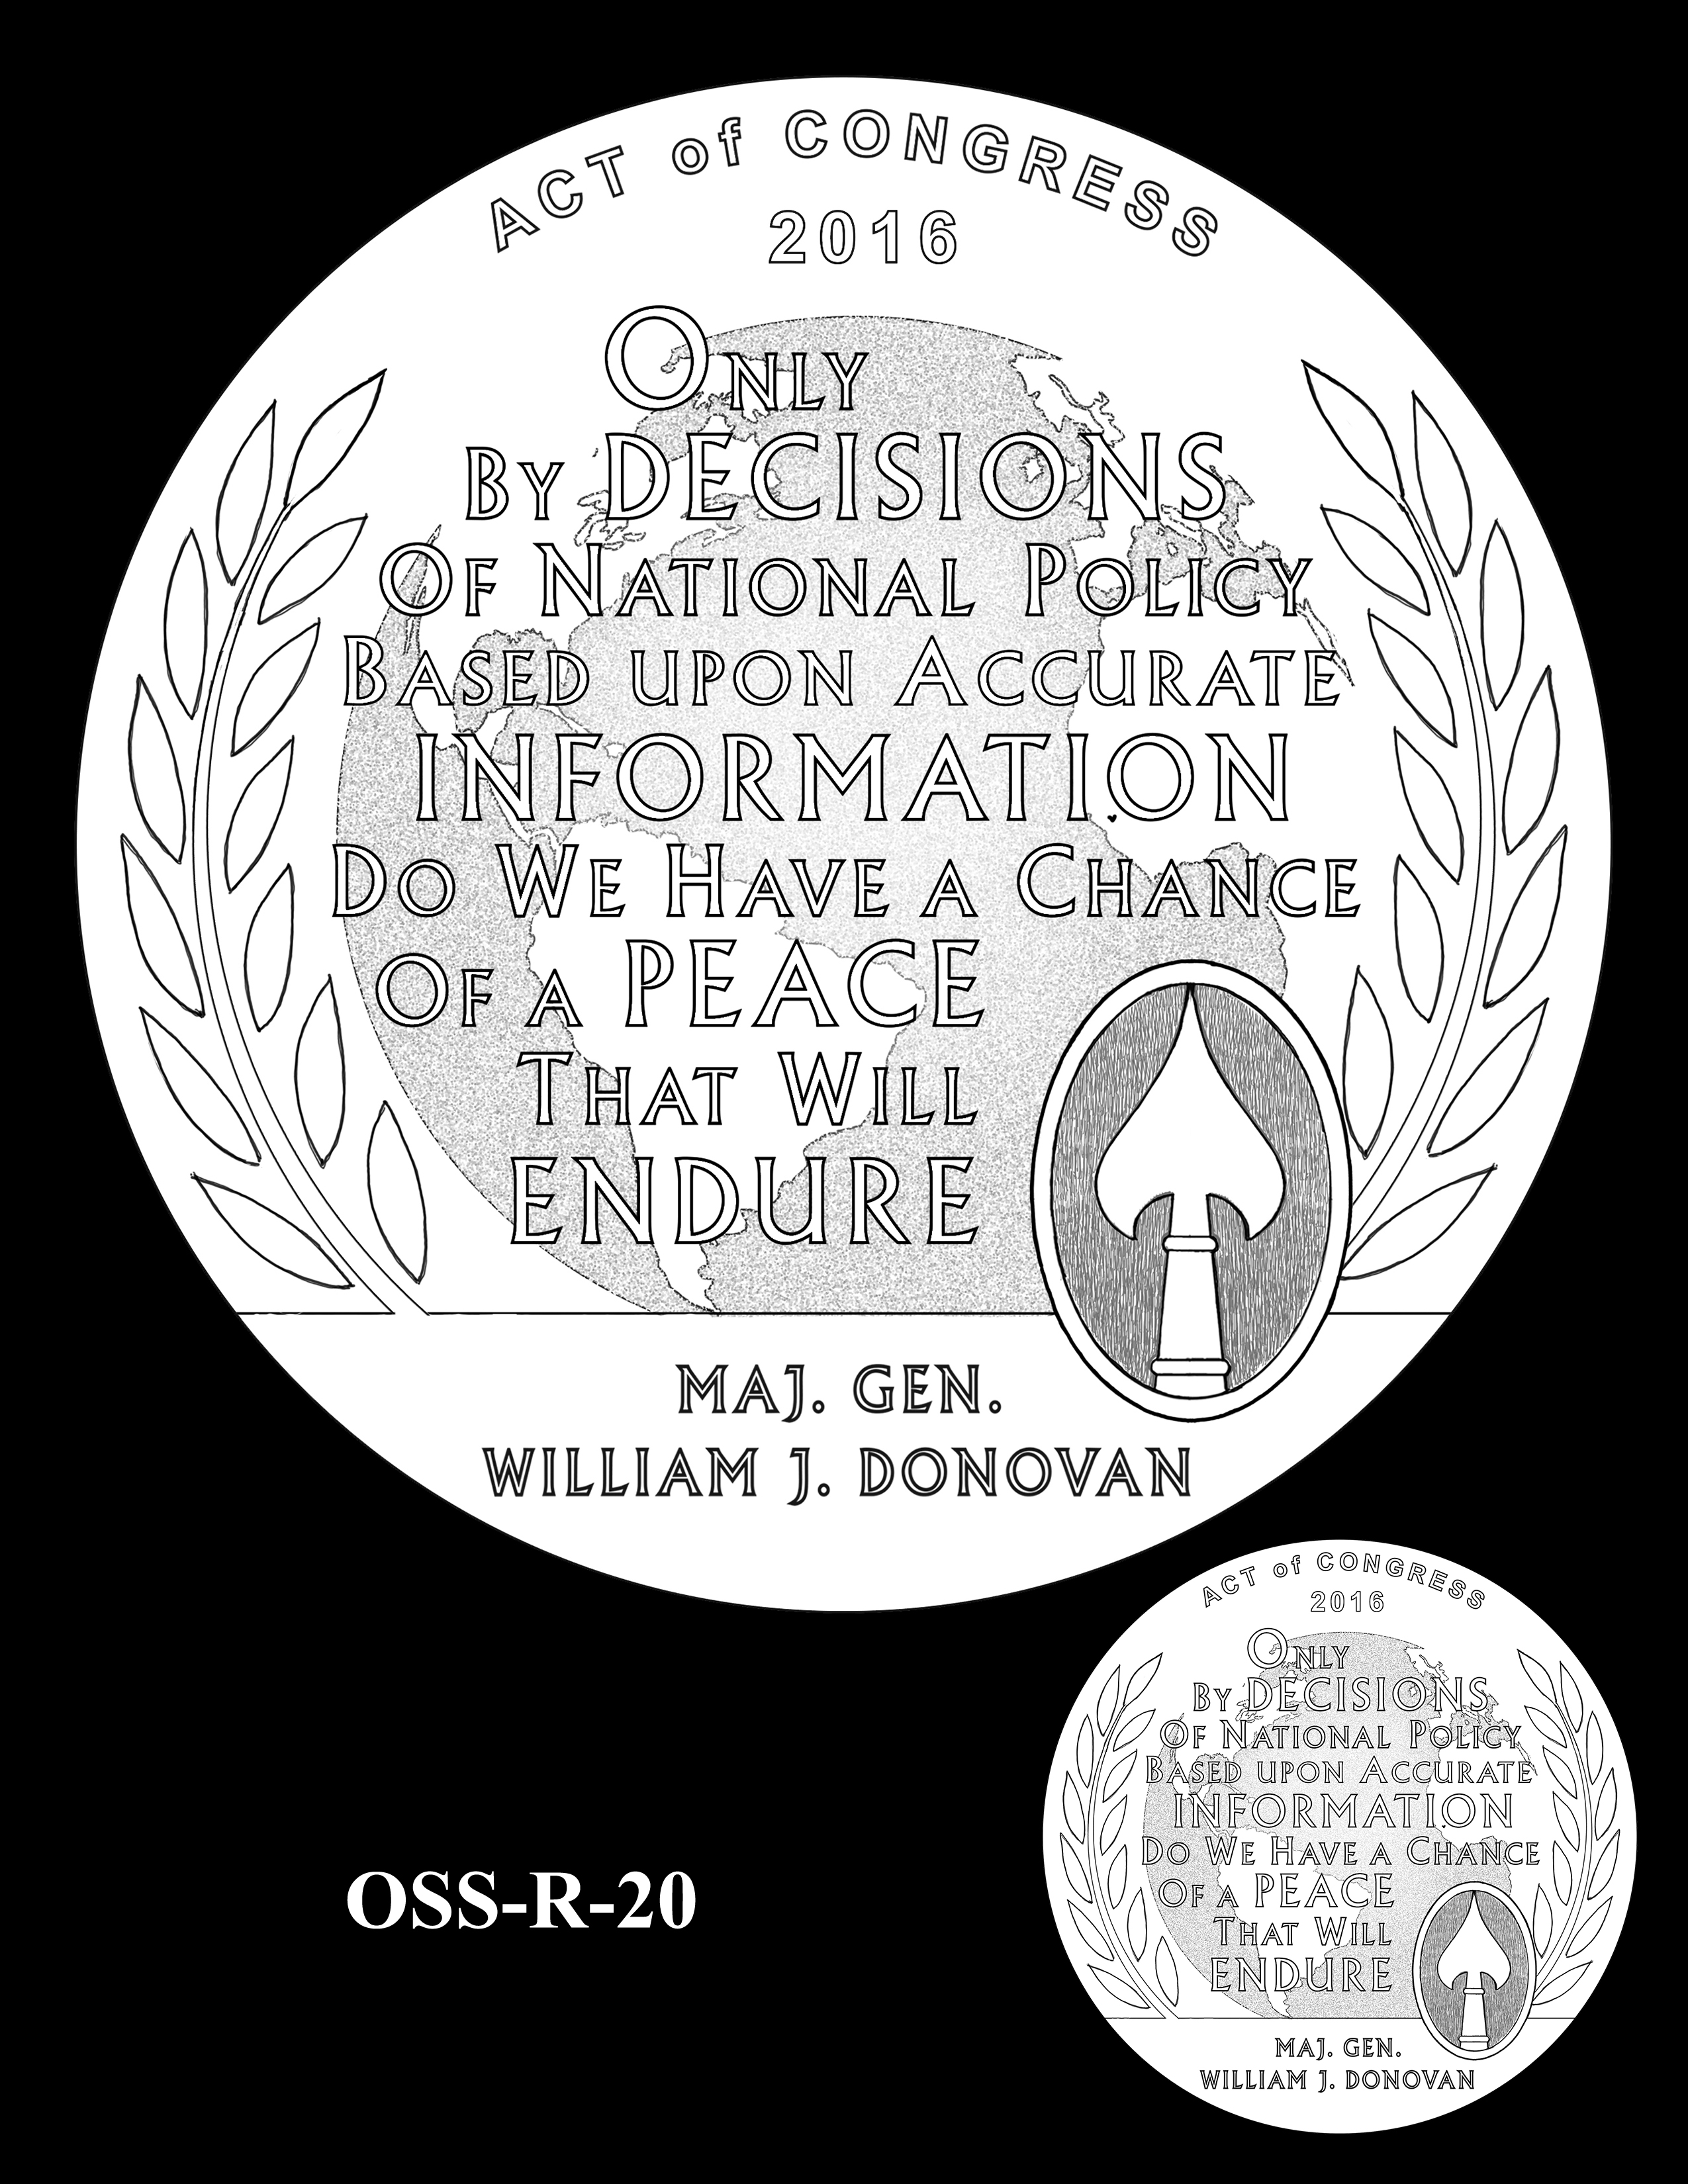 OSS-R-20 -- Office of Strategic Services Congressional Gold Medal